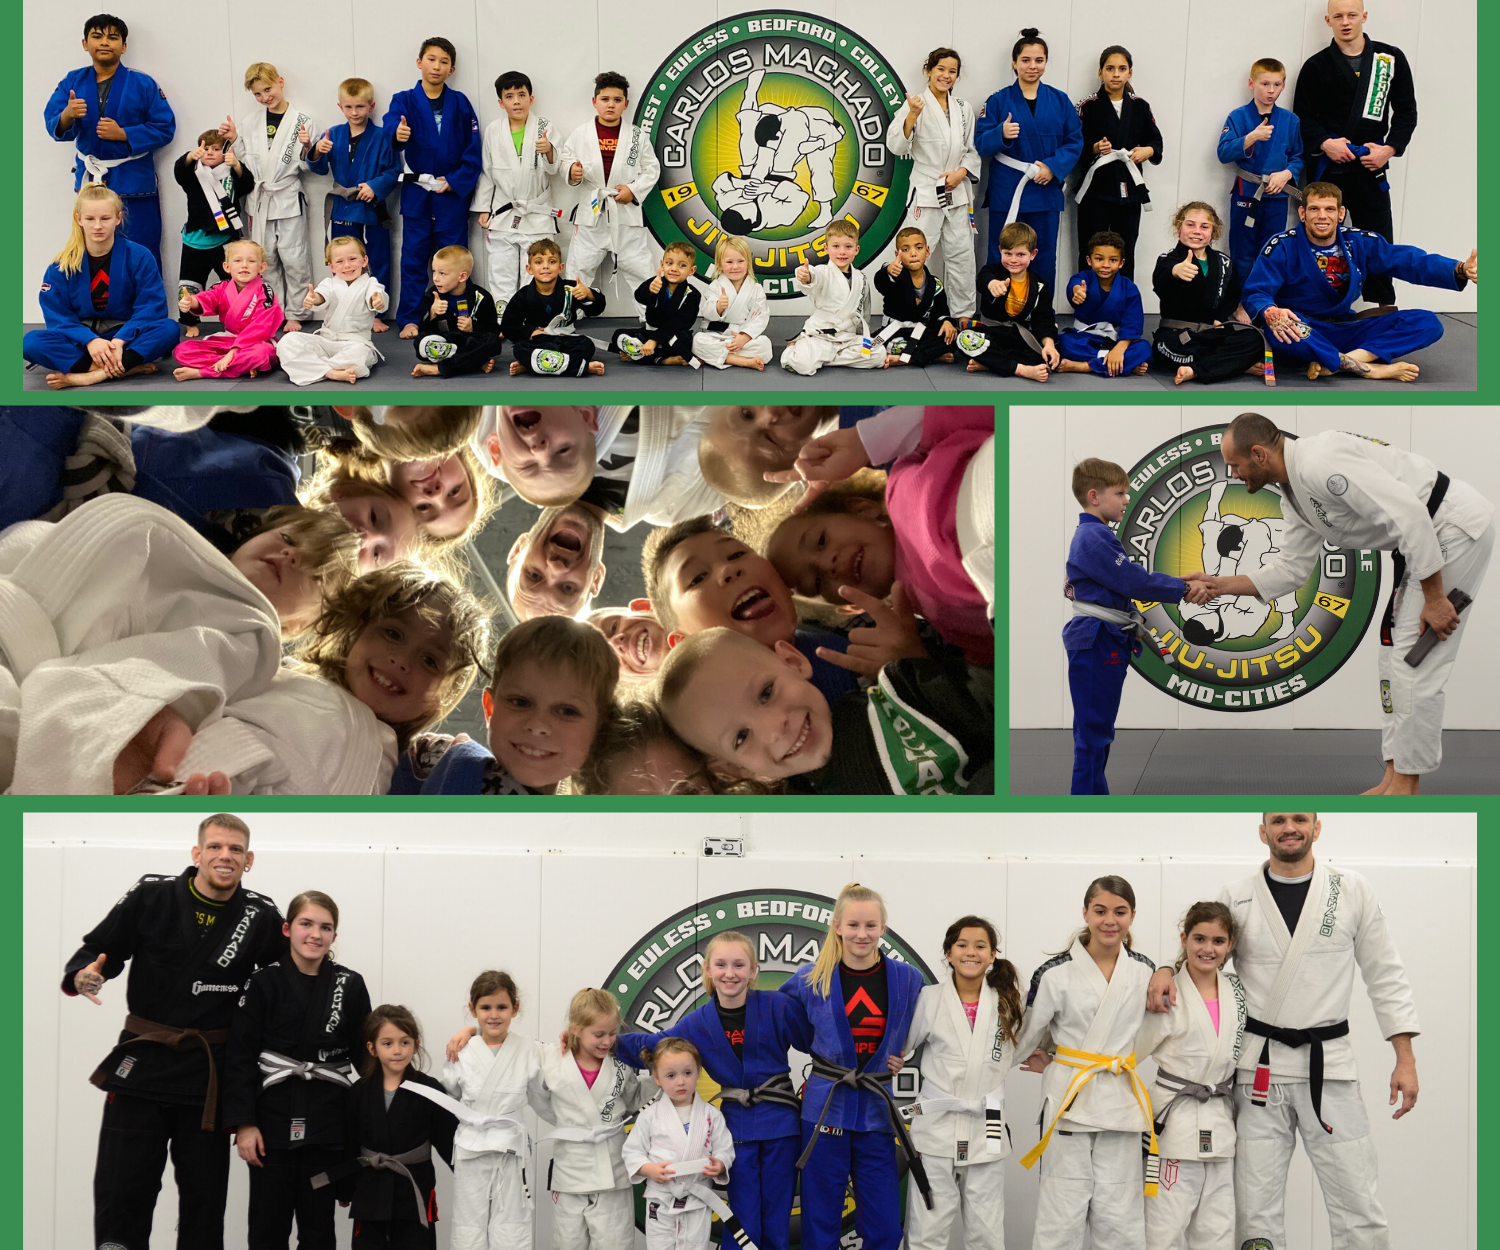 Kids Jiu Jitsu near Bedford